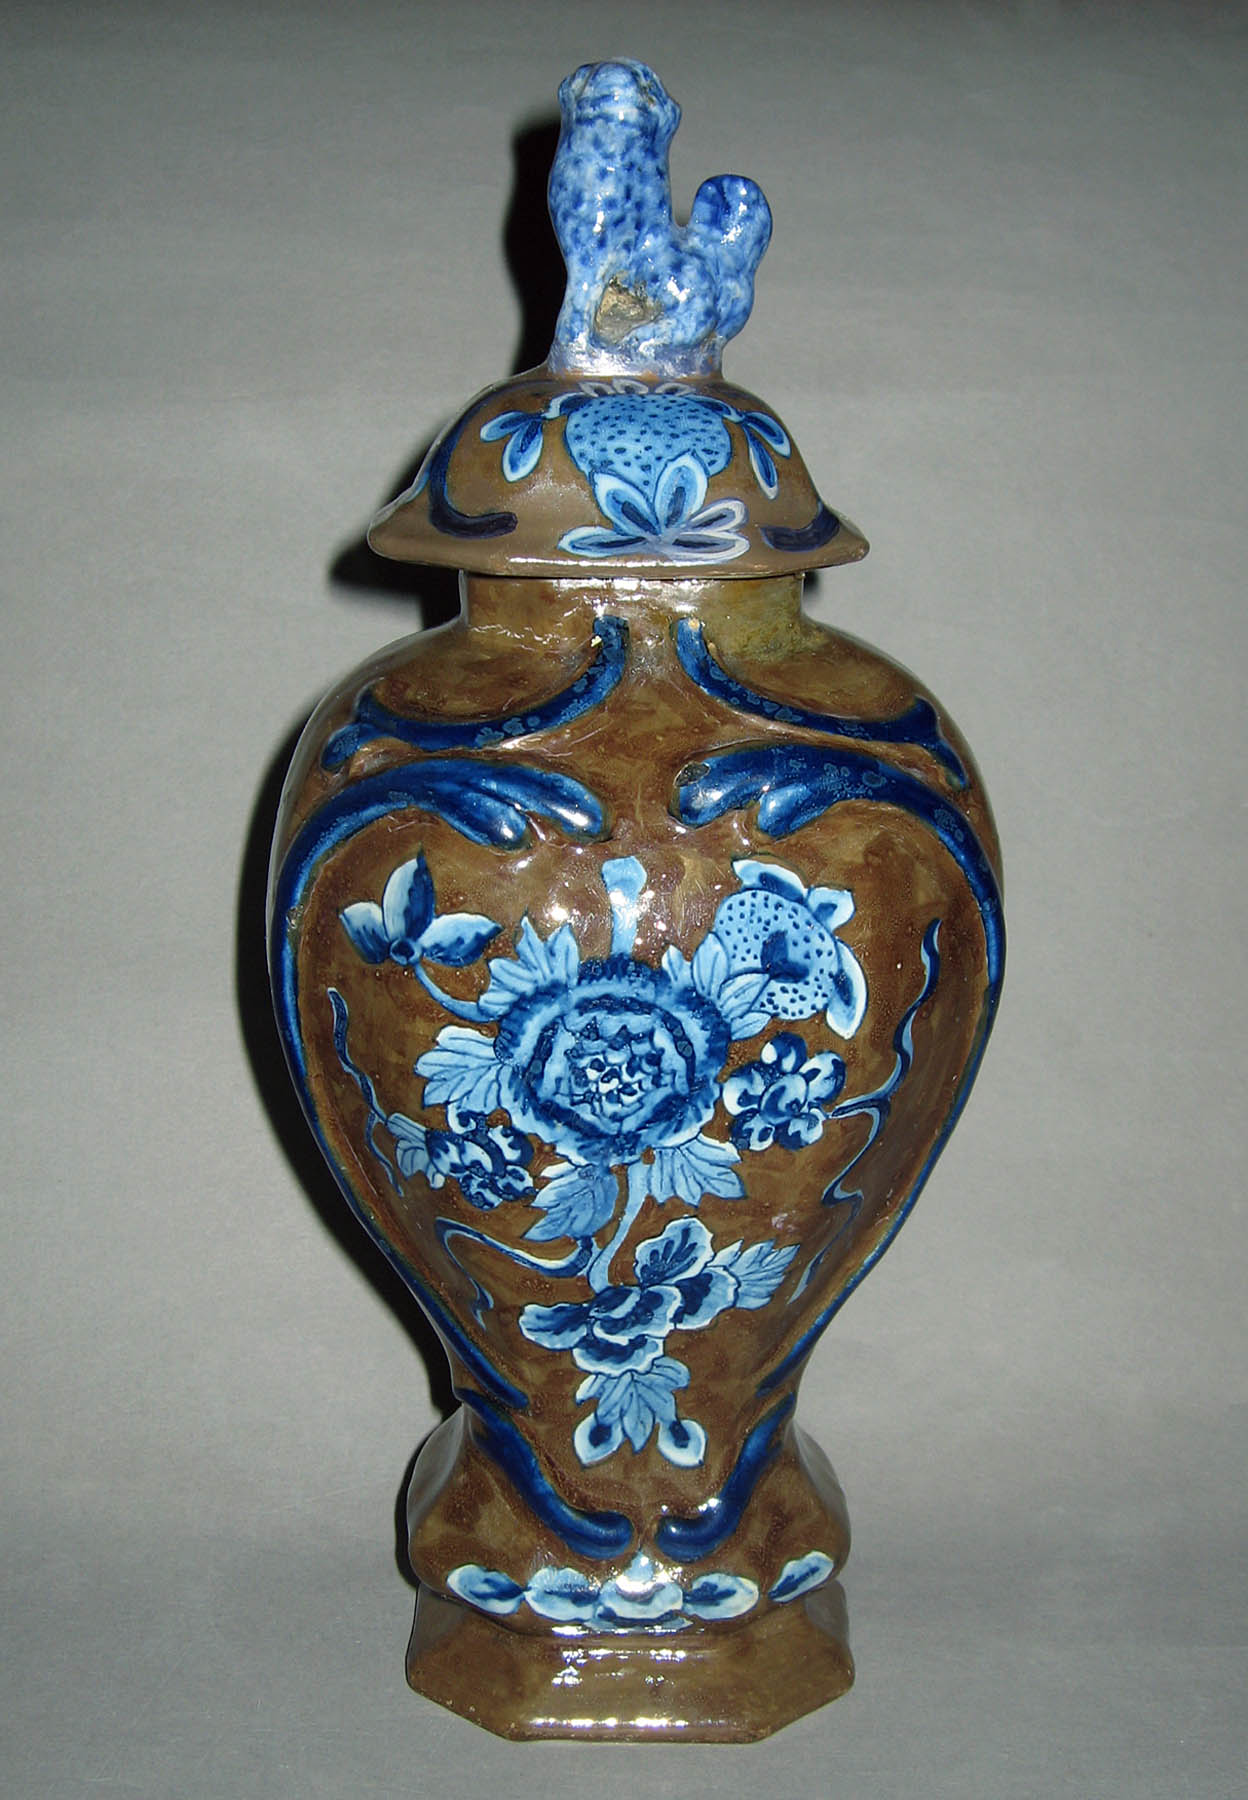 1953.0052.003 A, B Delft garniture vase